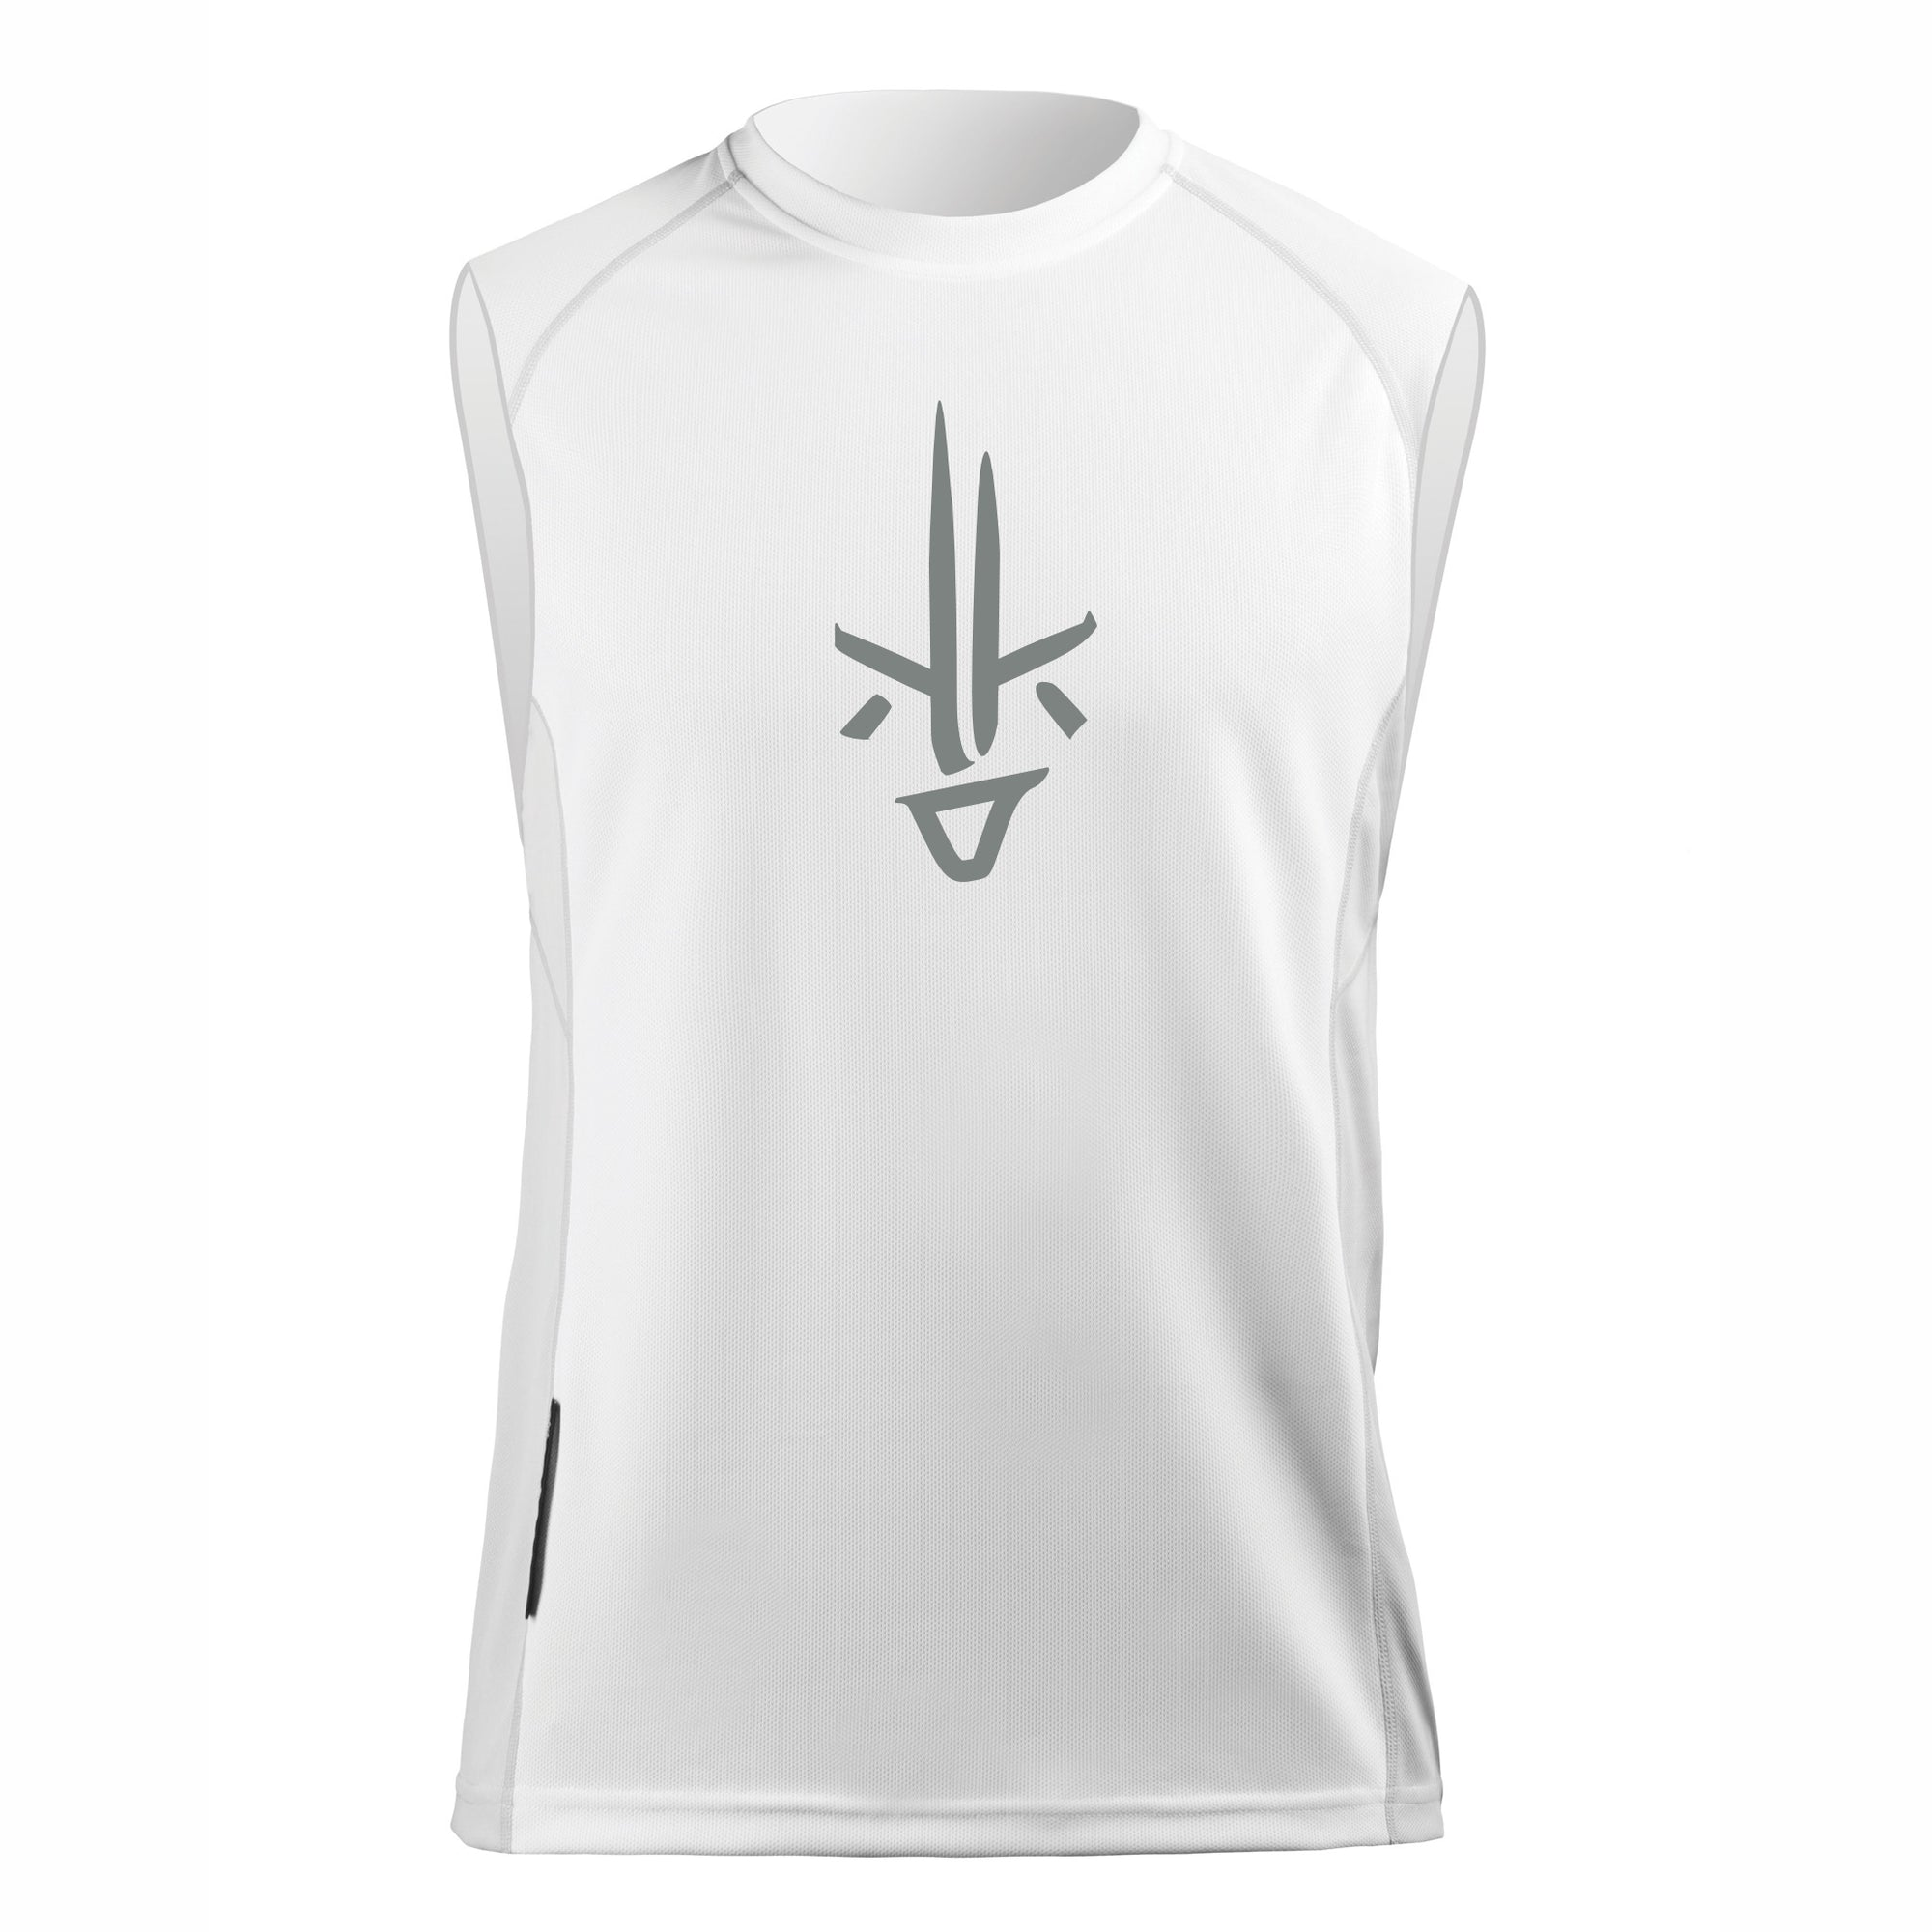 Team lukkaiiri men tank top